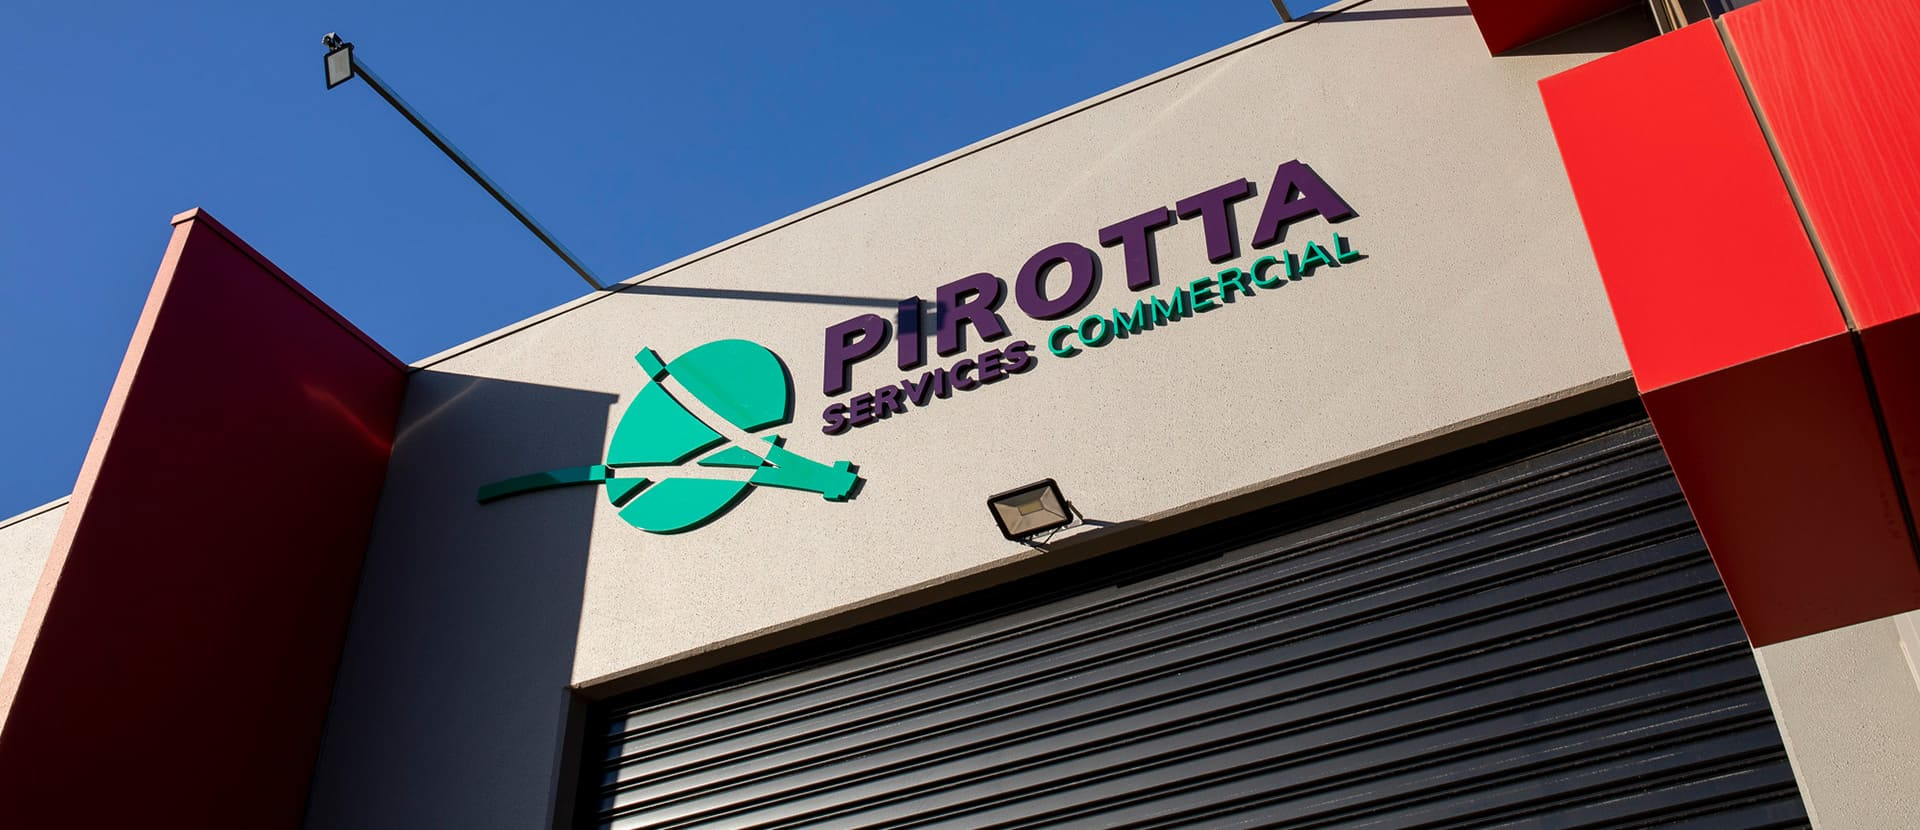 ABOUT PIROTTA SERVICES COMMERCIAL